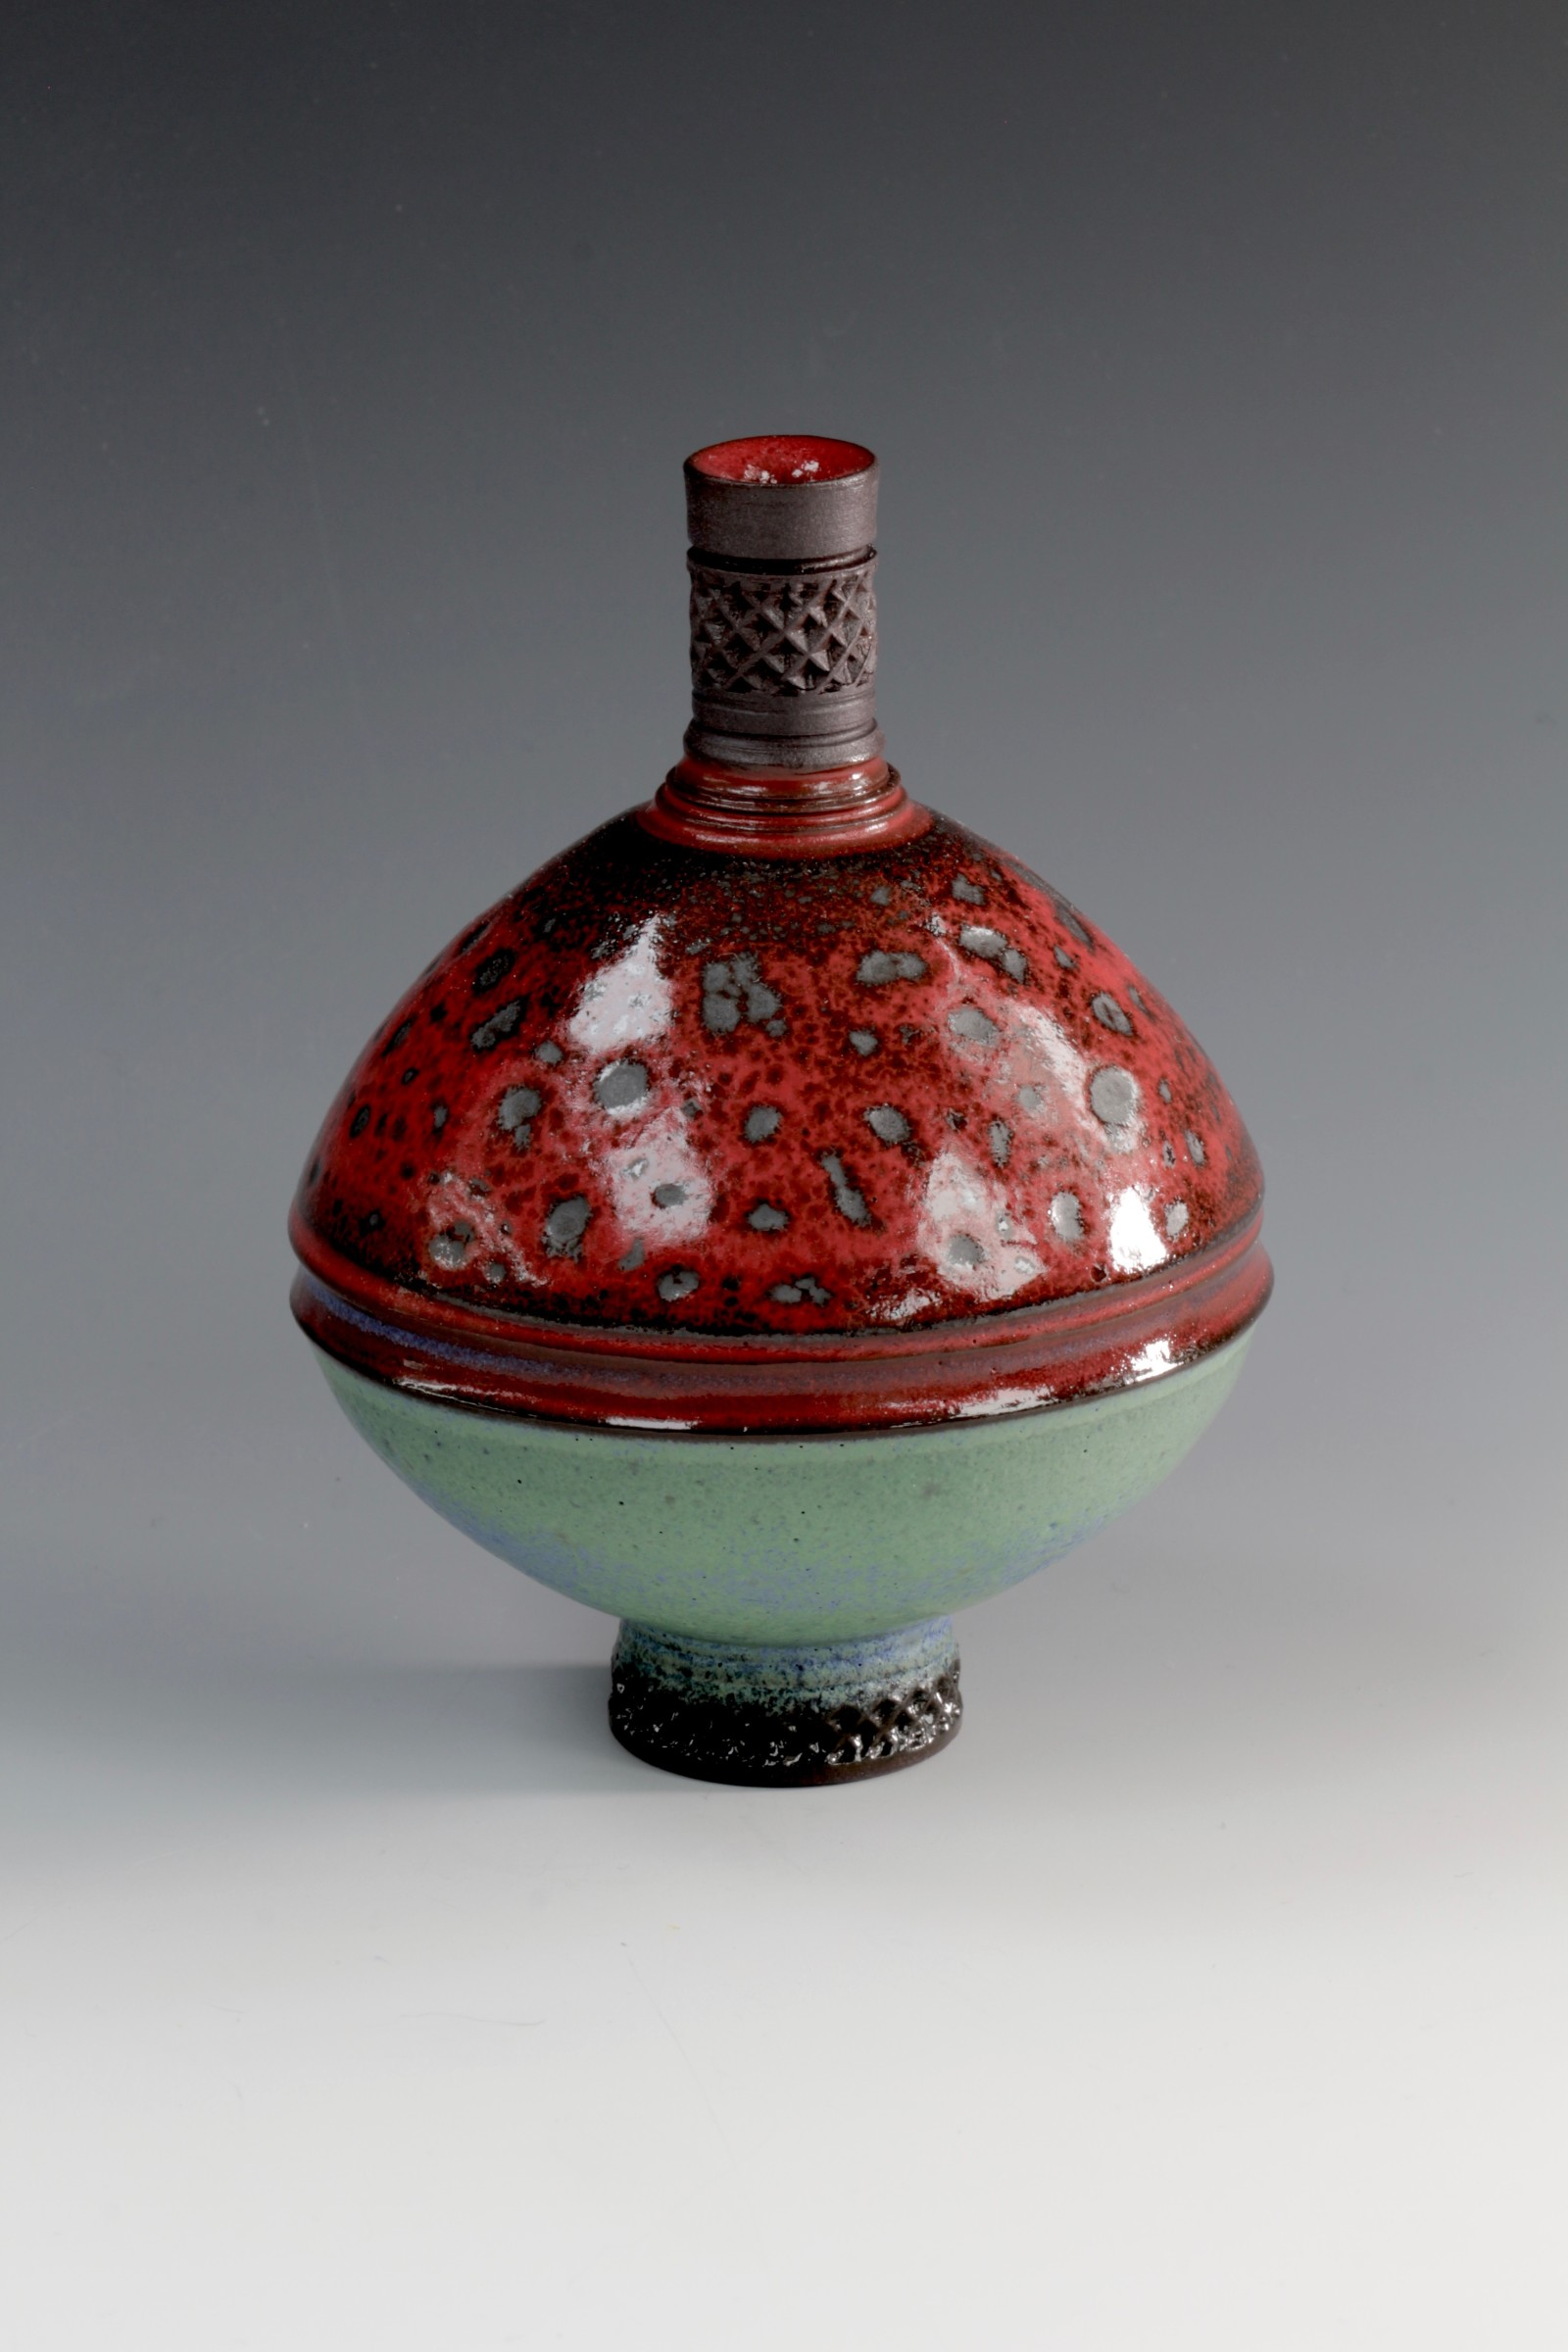 "<span class=""link fancybox-details-link""><a href=""/artists/61-geoffrey-swindell/works/6905-geoffrey-swindell-bud-vase-2020/"">View Detail Page</a></span><div class=""artist""><strong>Geoffrey Swindell</strong></div> b. 1945 <div class=""title""><em>Bud Vase</em>, 2020</div> <div class=""signed_and_dated"">impressed artist's seal to base</div> <div class=""medium"">porcelain</div><div class=""price"">£170.00</div><div class=""copyright_line"">Own Art: £ 17 x 10 Months, 0% APR</div>"